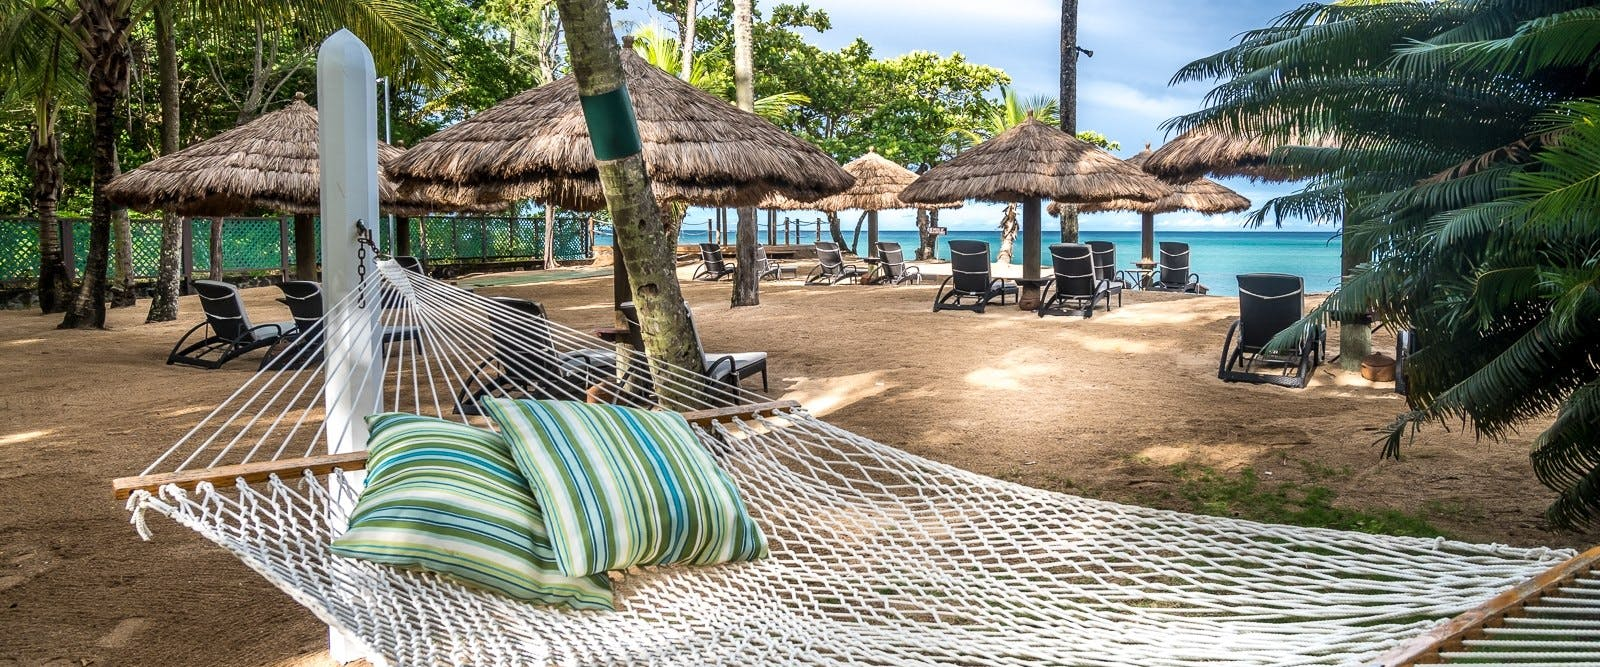 Beach hammock at East Winds, St Lucia